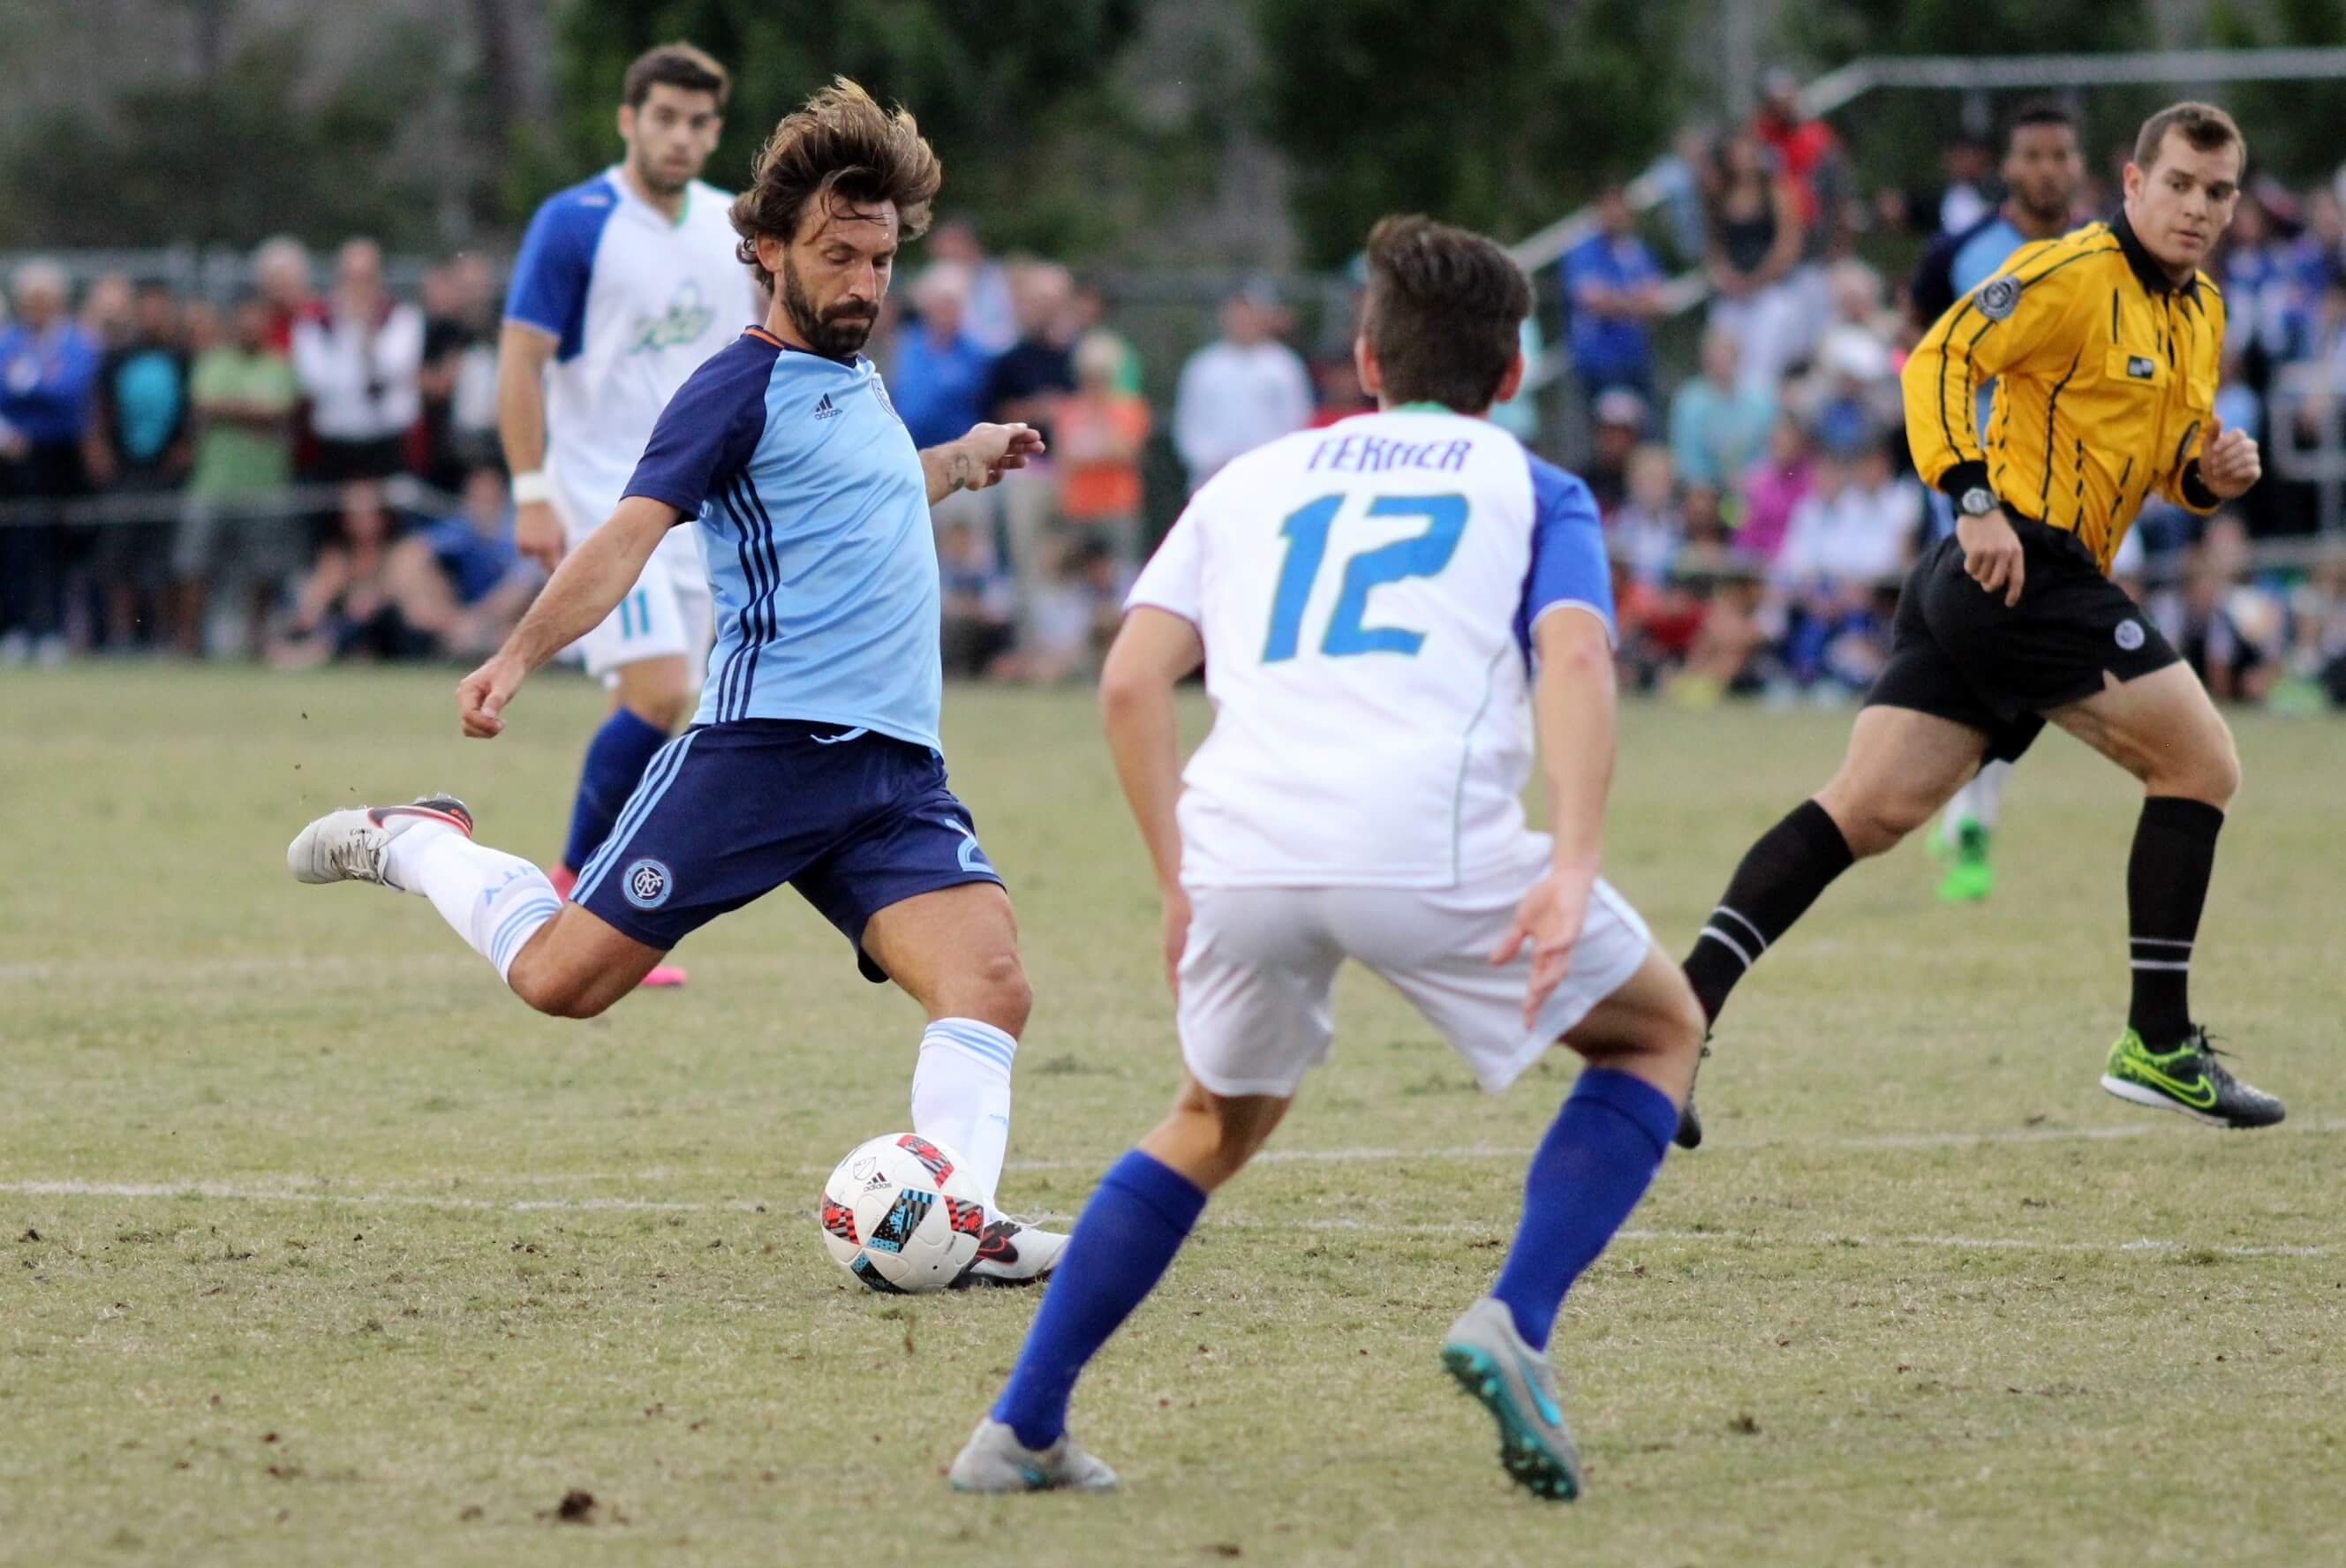 NYCFC takes on FGCU men's soccer team in front of record sellout crowd